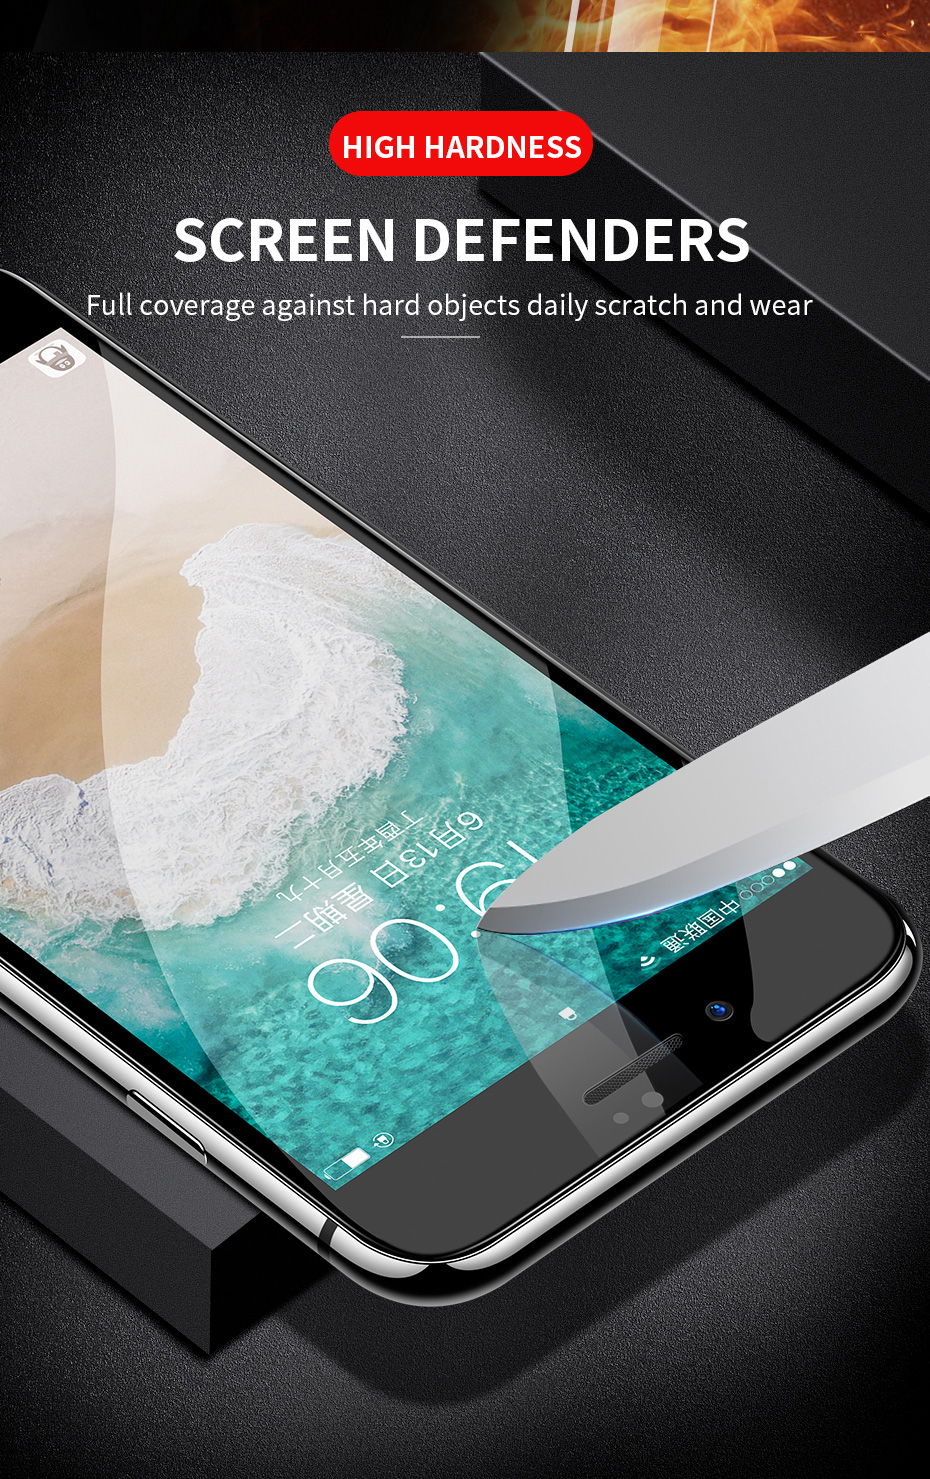 Bakeey 6D Arc Edge Anti Fingerprint Tempered Glass Screen Protector for iPhone 7/8